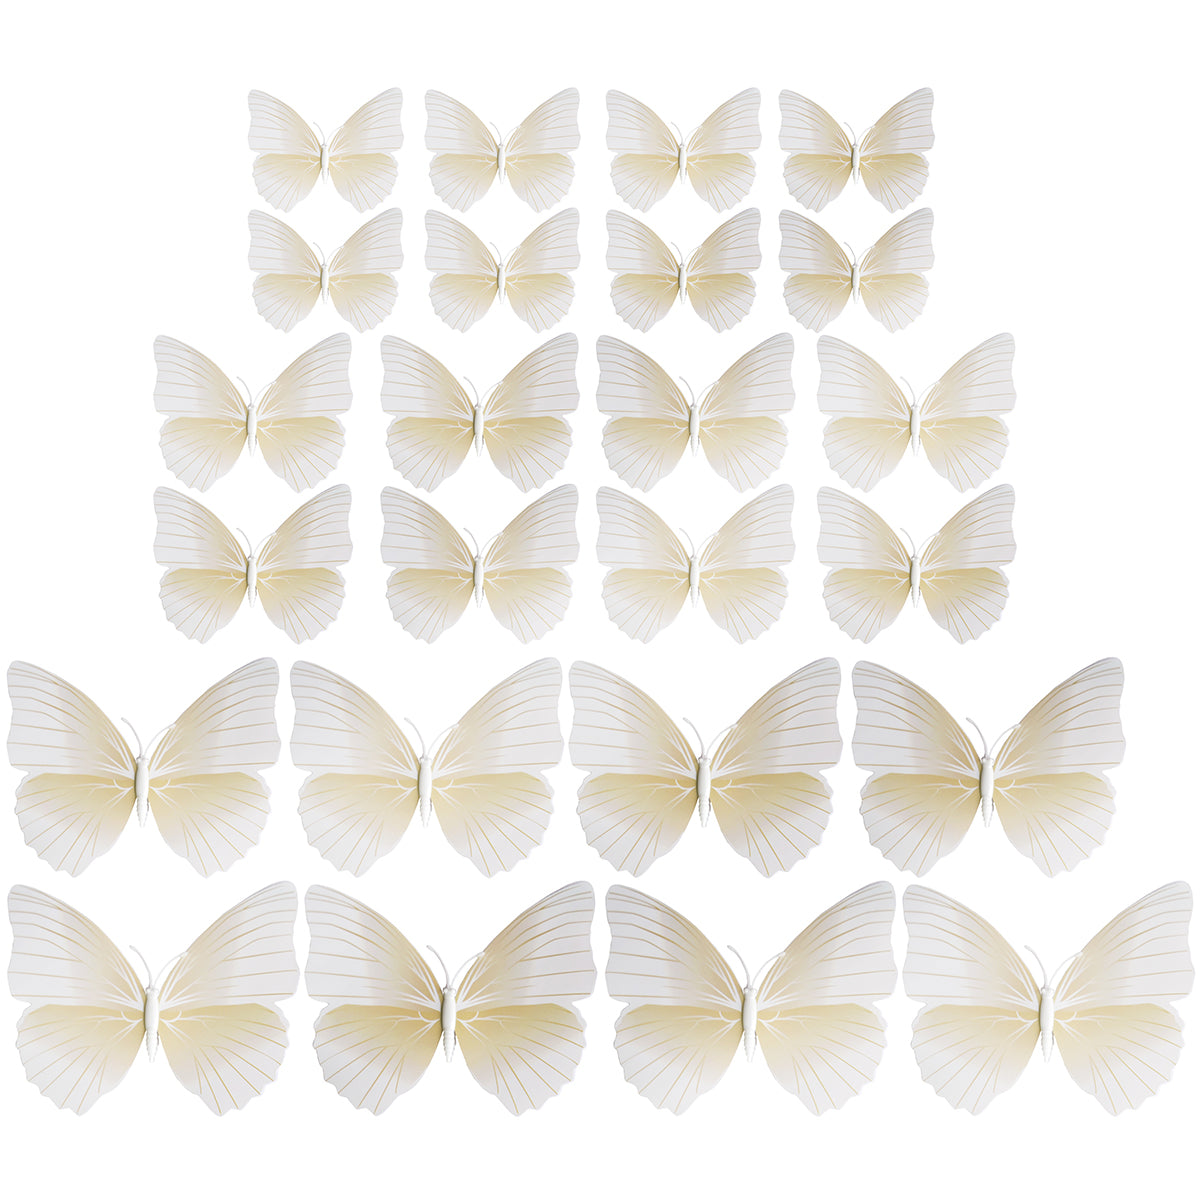 White Butterflies Decorations with Magnet  24 Pieces